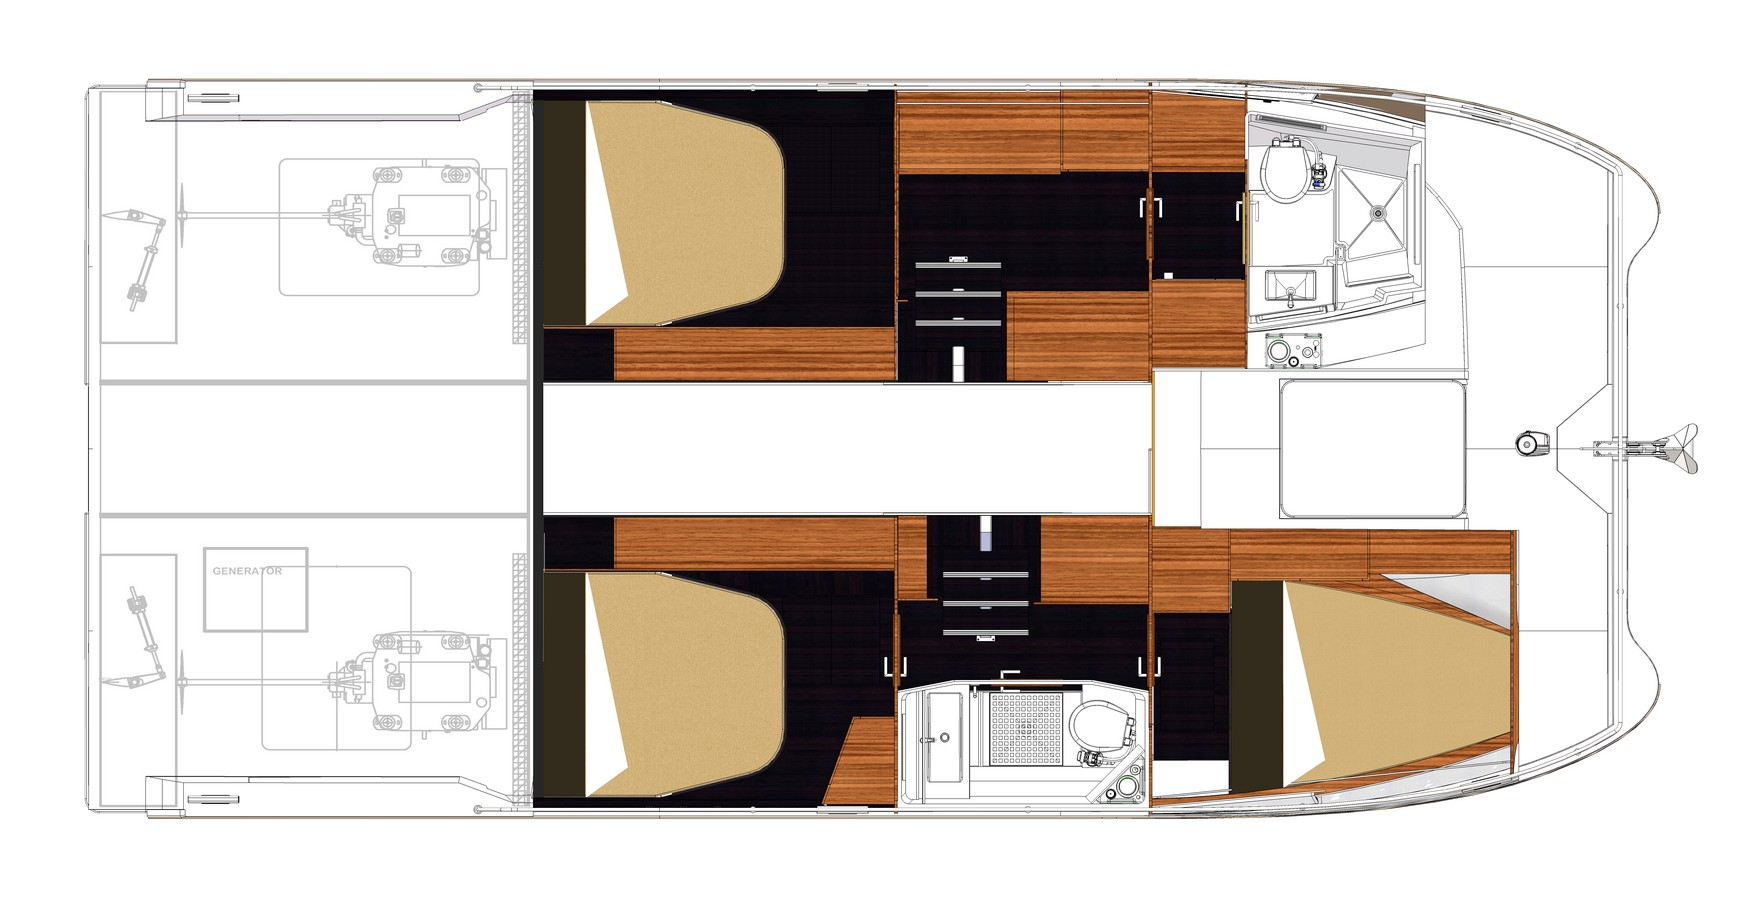 New Power Catamarans for Sale  MY 37 Layout & Accommodations